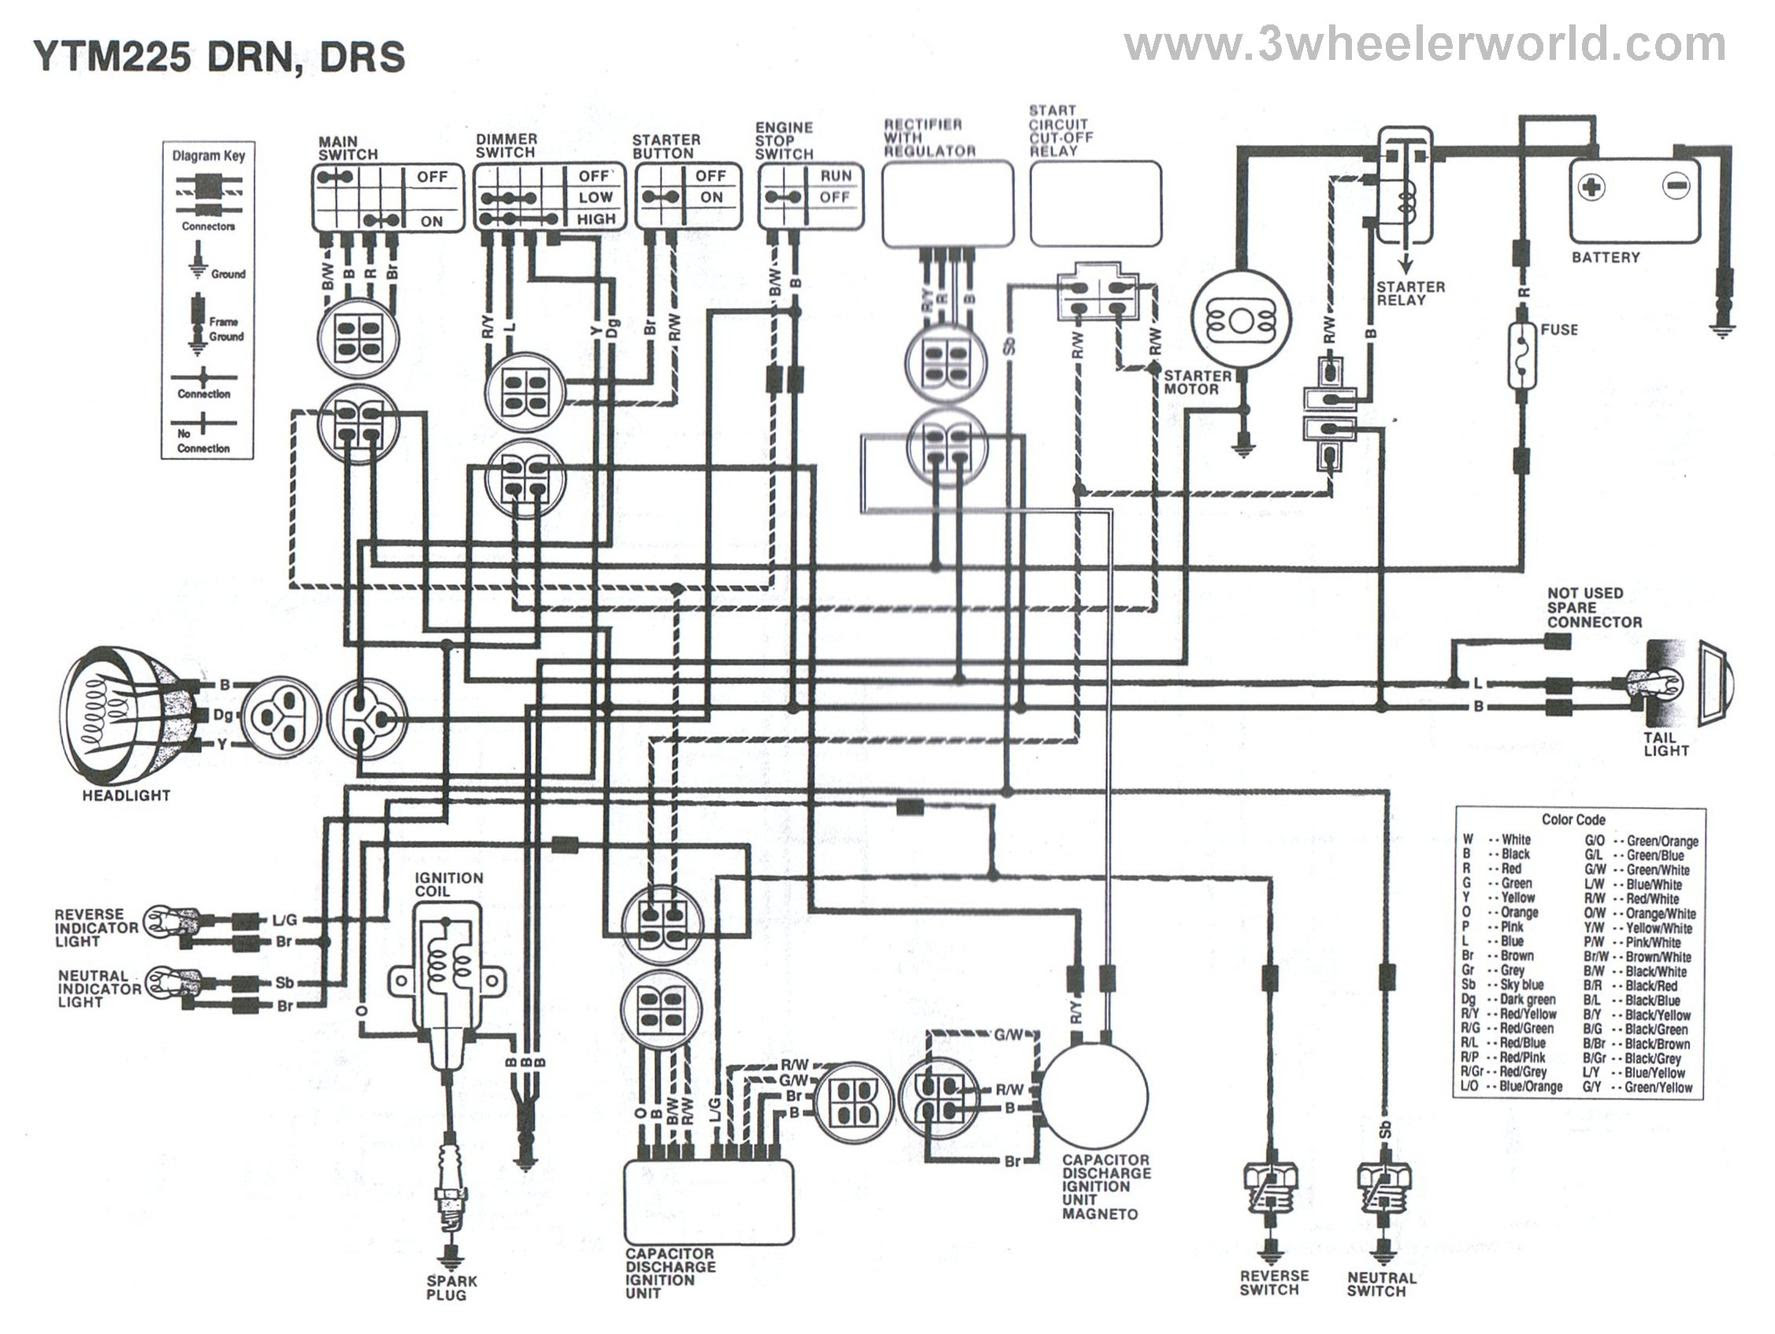 1989 yamaha moto 4 250 wiring diagram | cater-list wiring diagram models -  cater-list.hoteldelmarlidodicamaiore.it  wiring diagram library